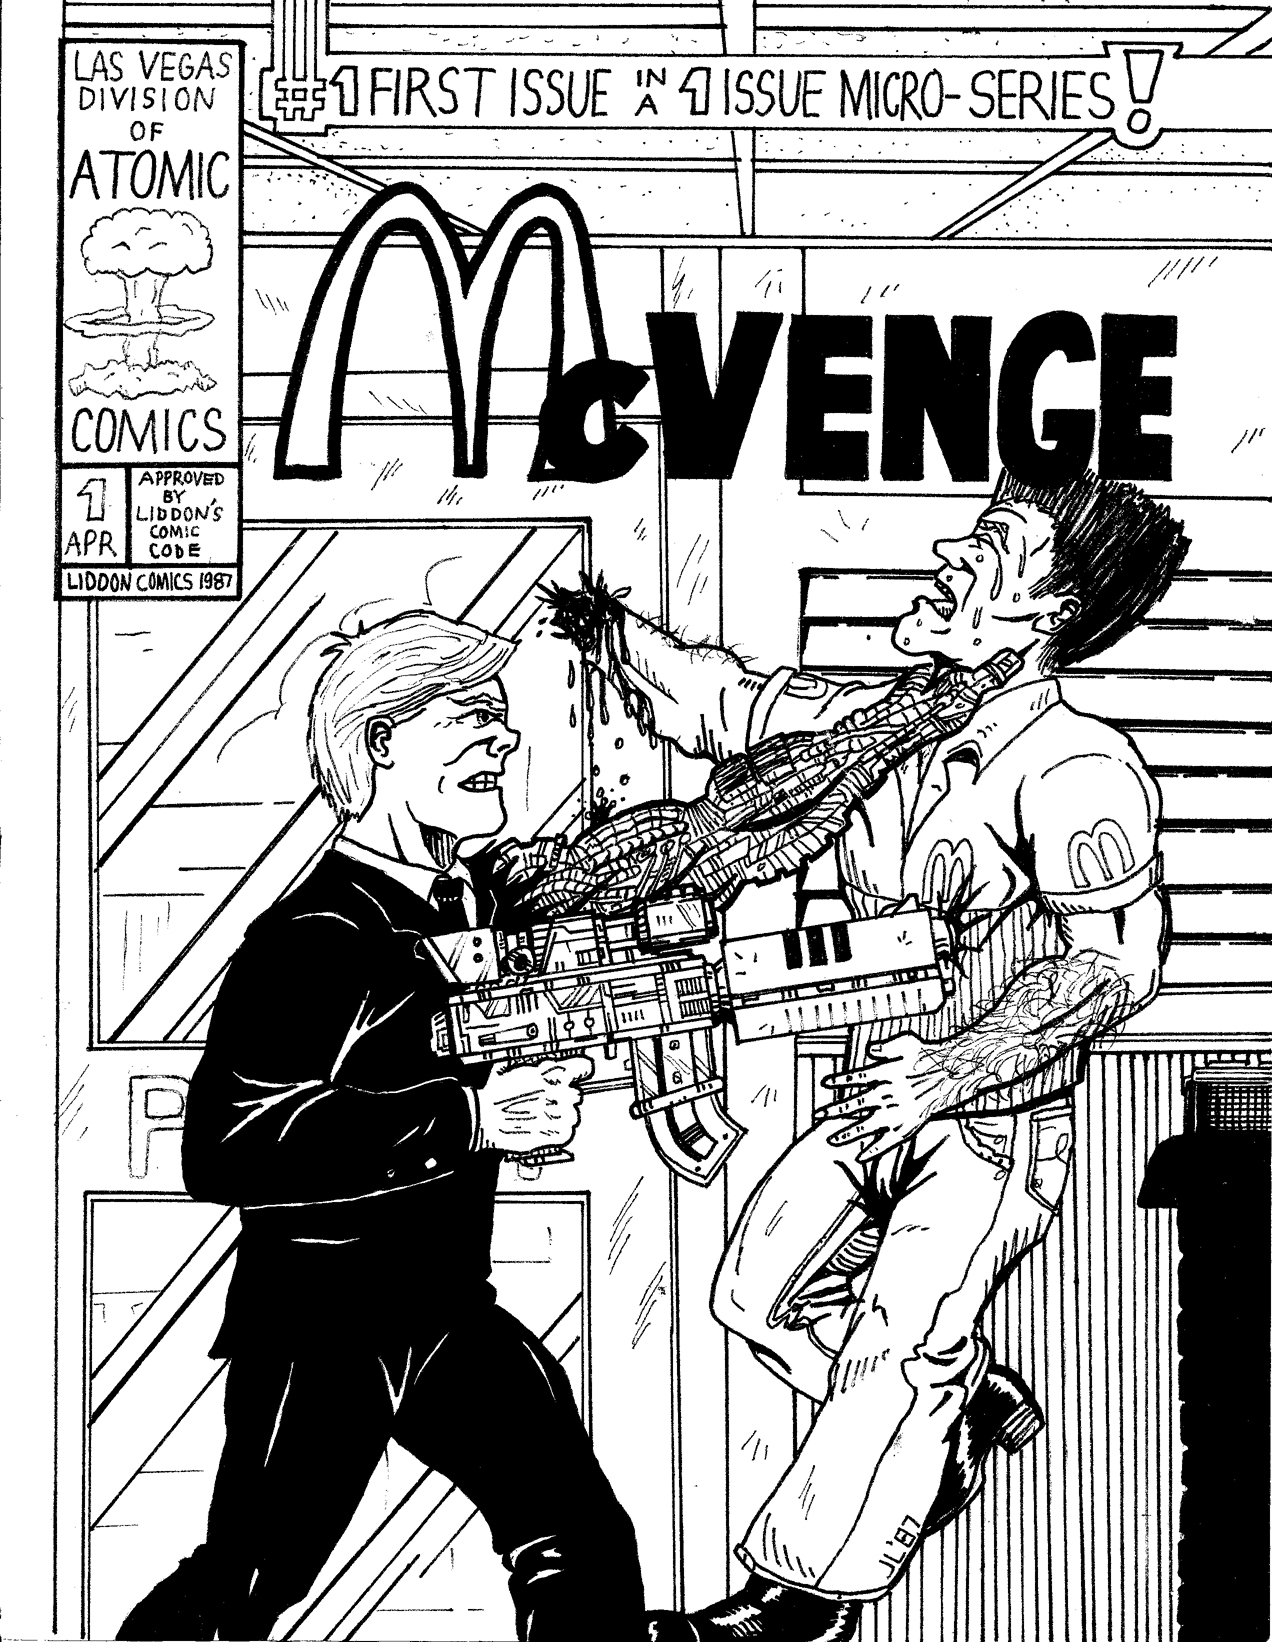 Murder and mayhem at a fast food joint!